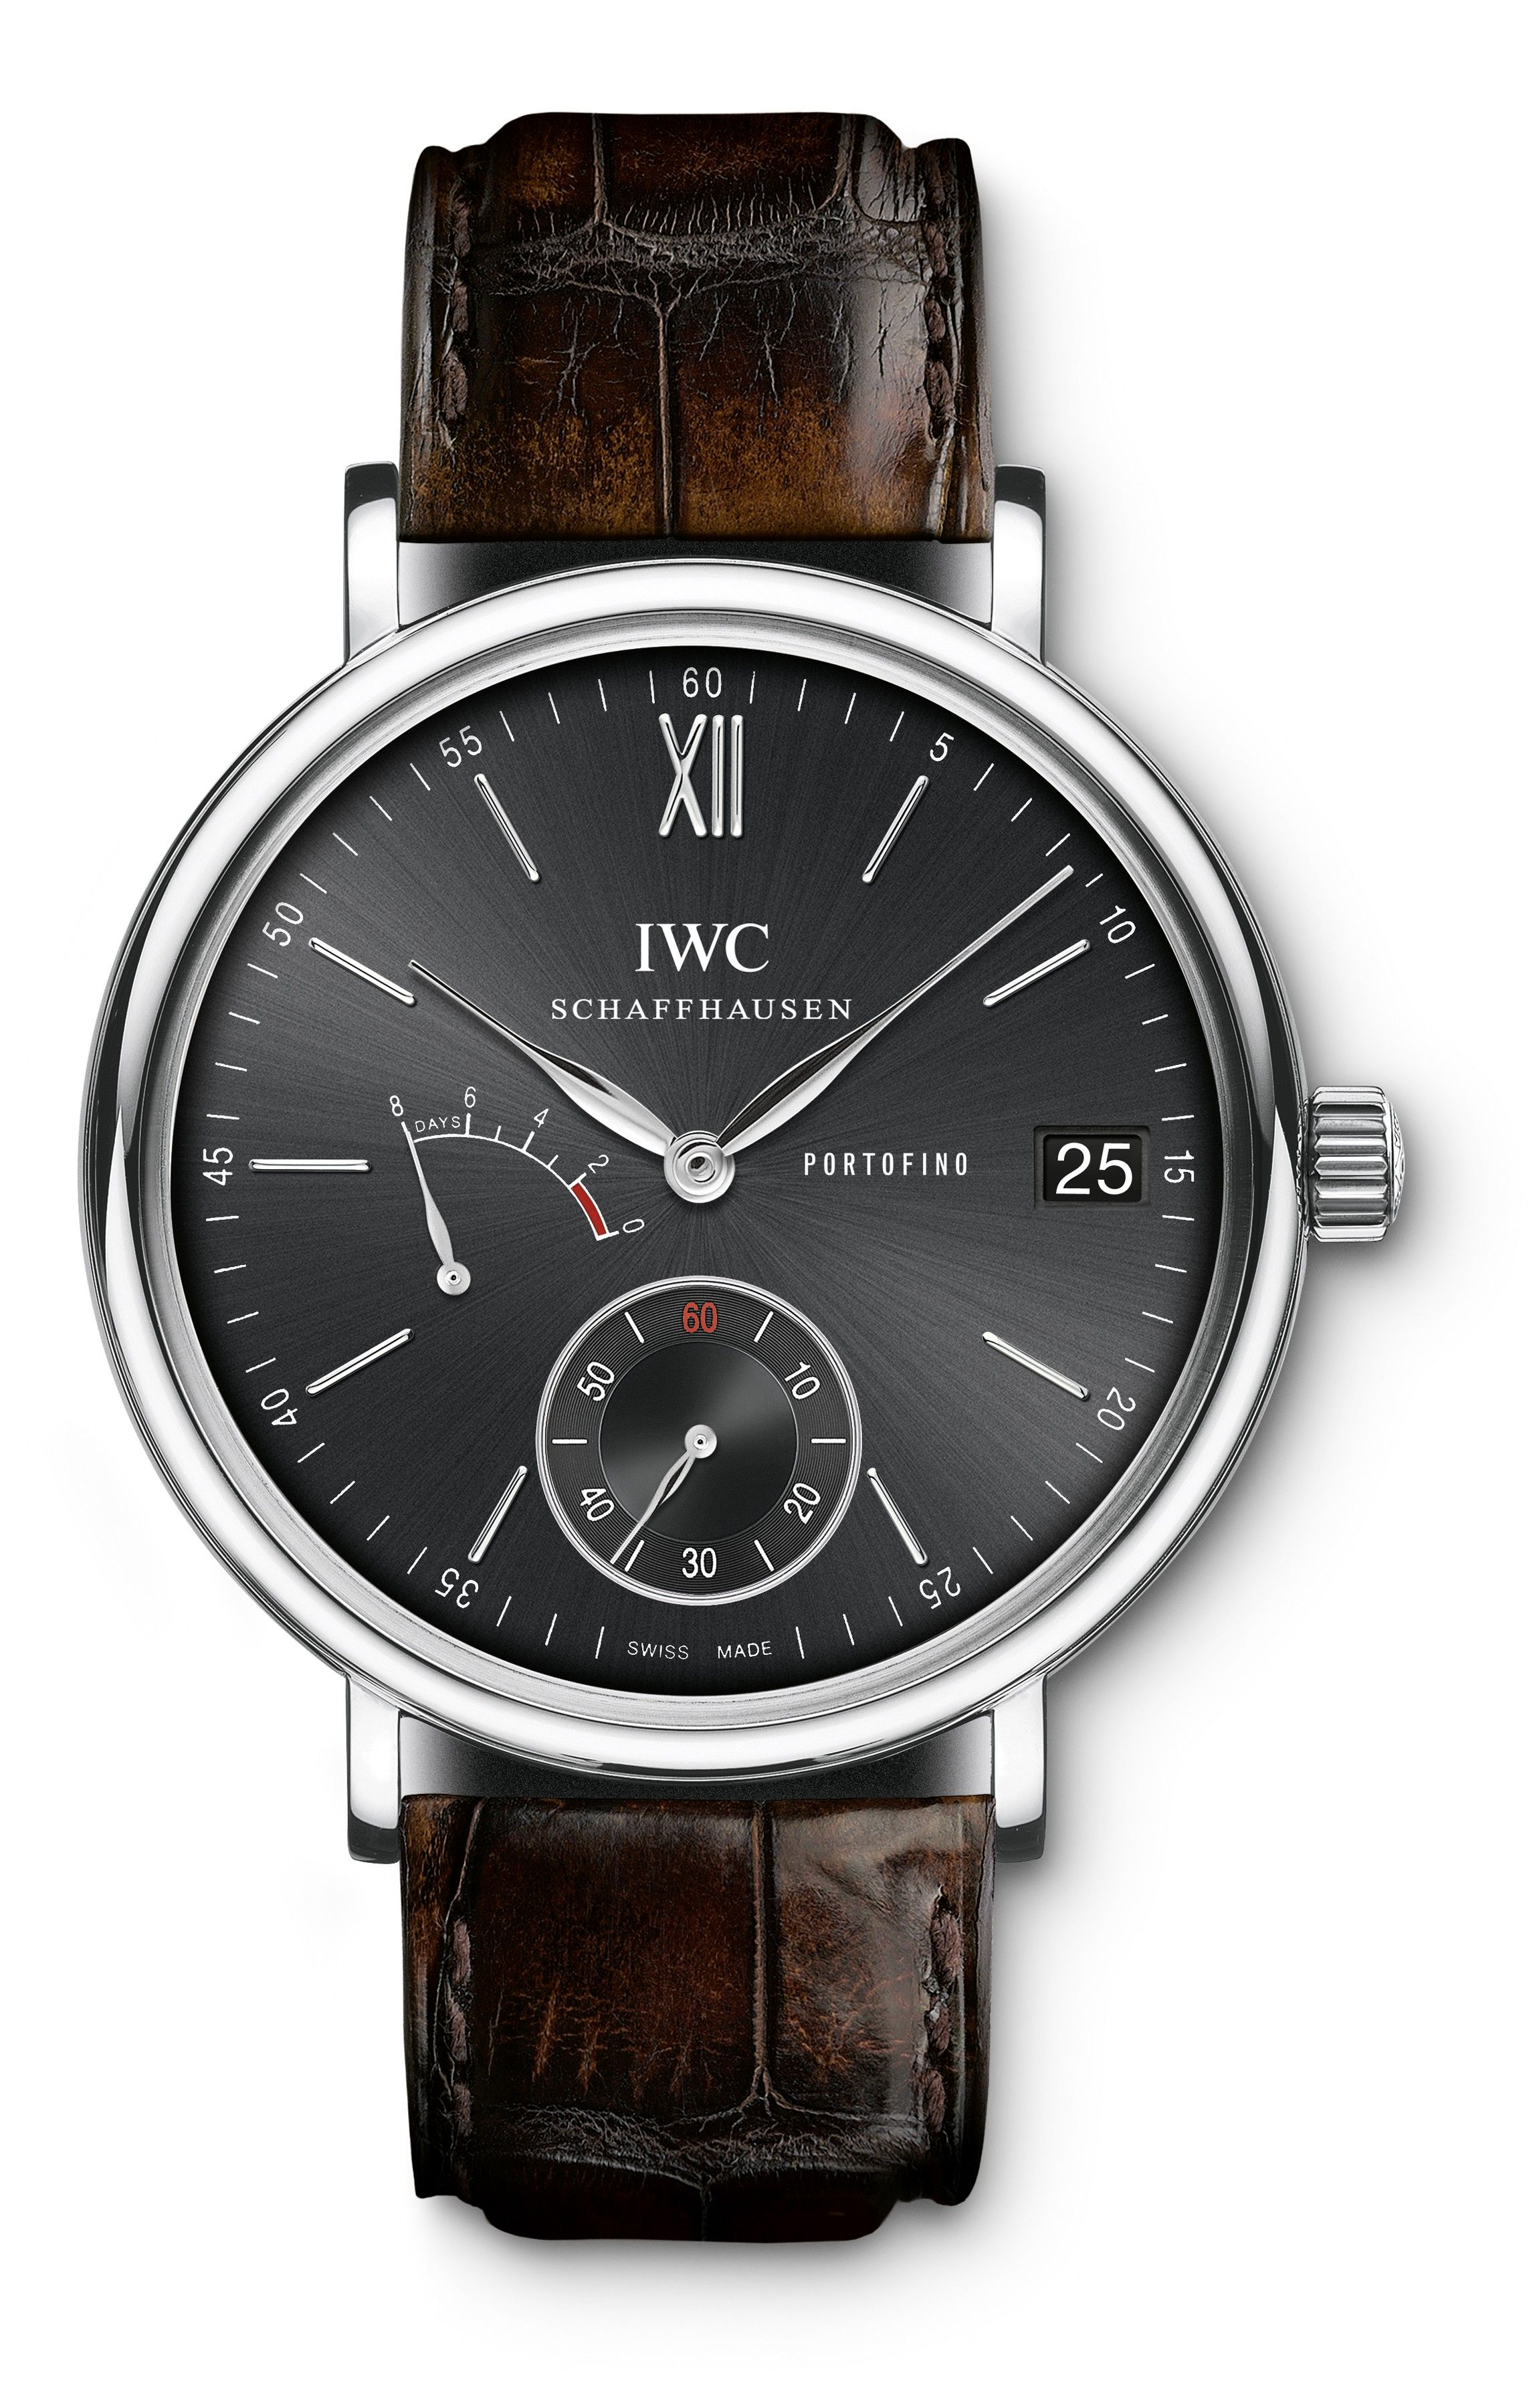 c5077424ebe IWC Portofino 8 Days Black Face ..Can t decide between this or the white  face